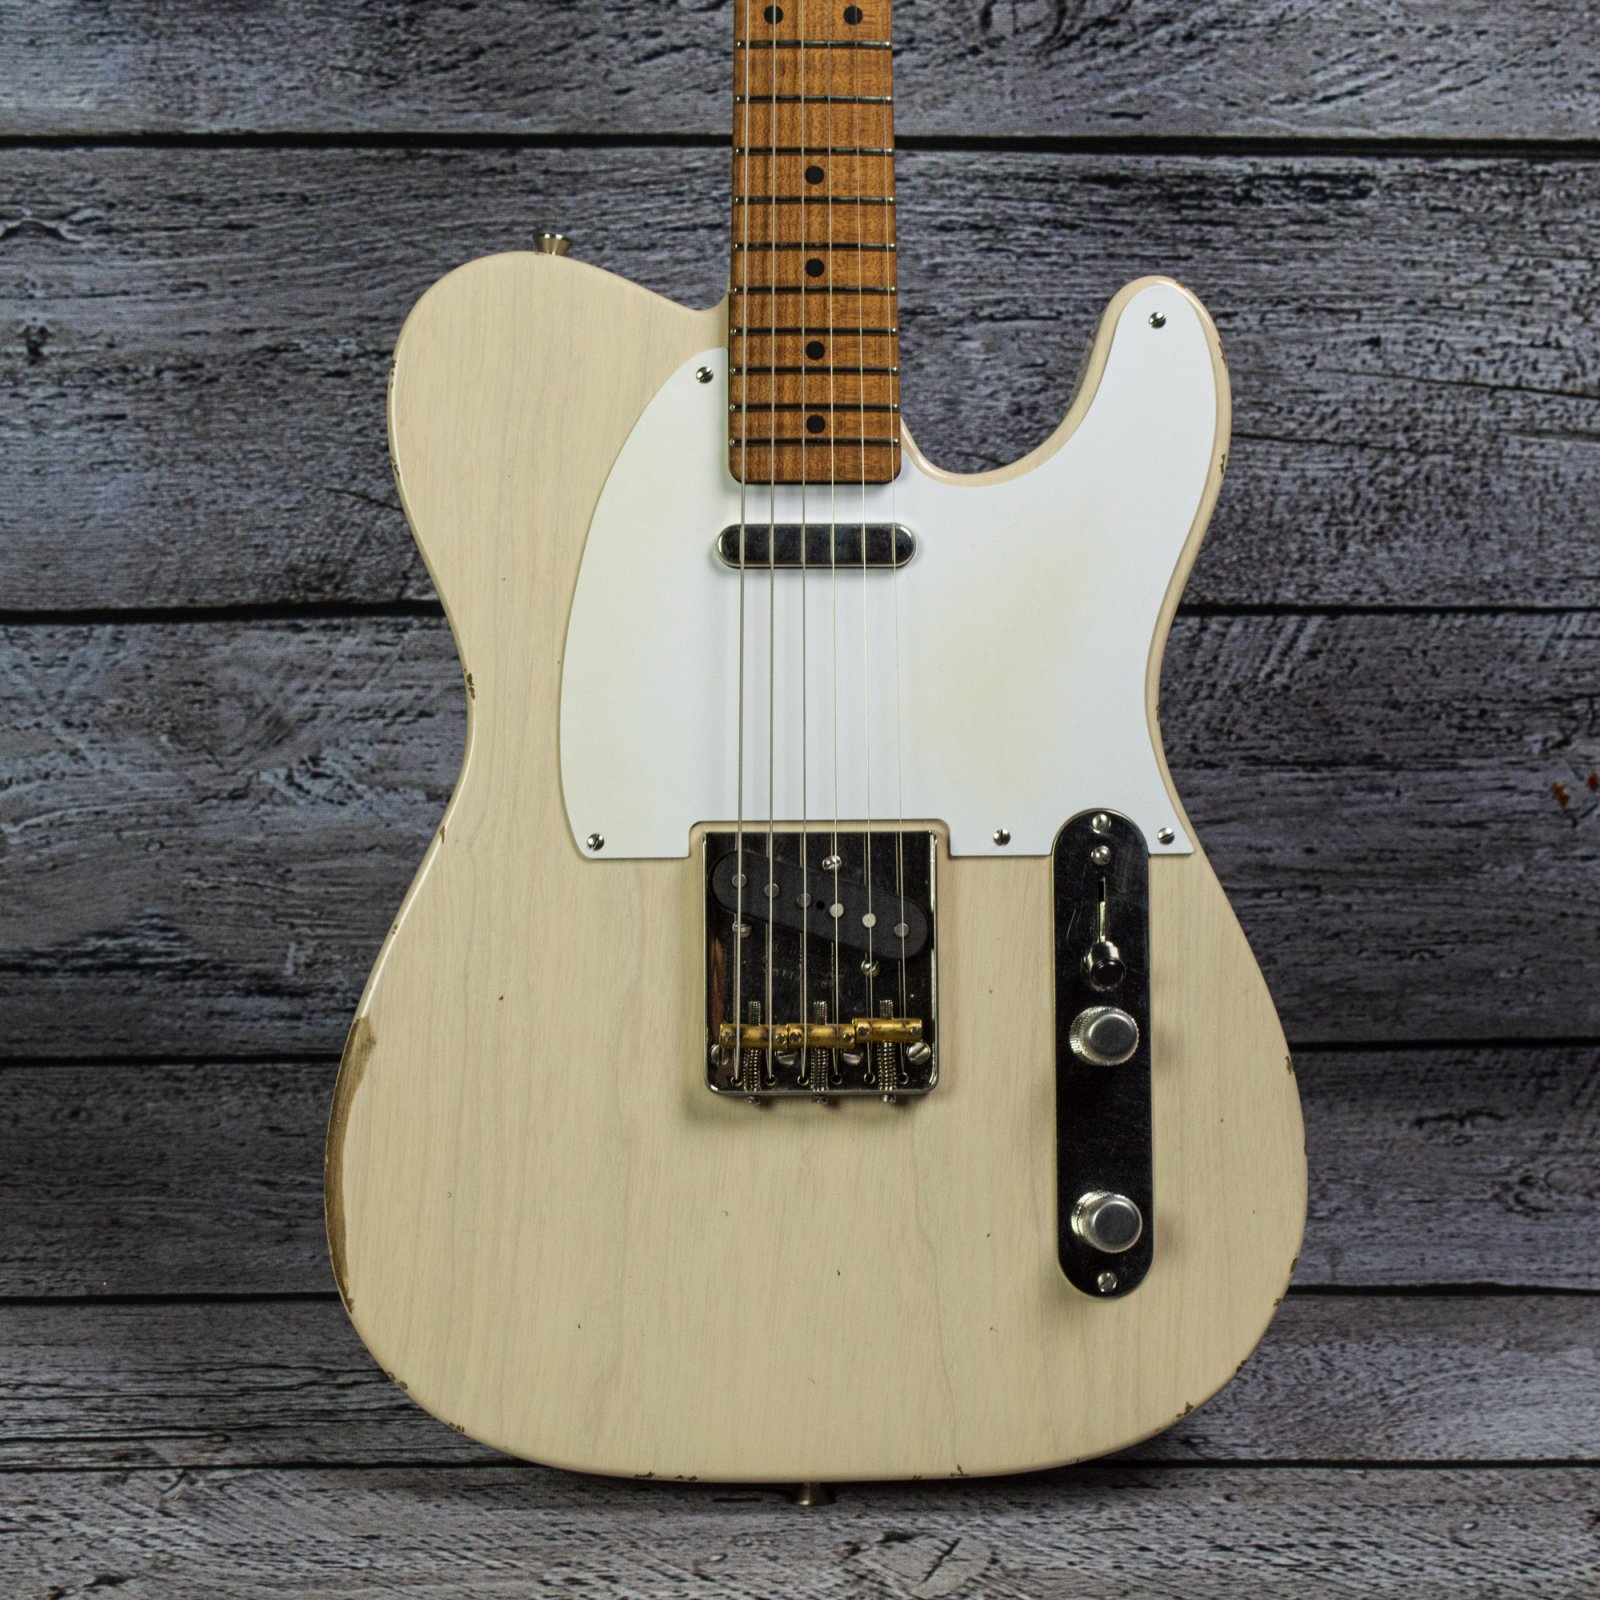 Xotic Guitars XTC-1 - Medium Aged White Blonde